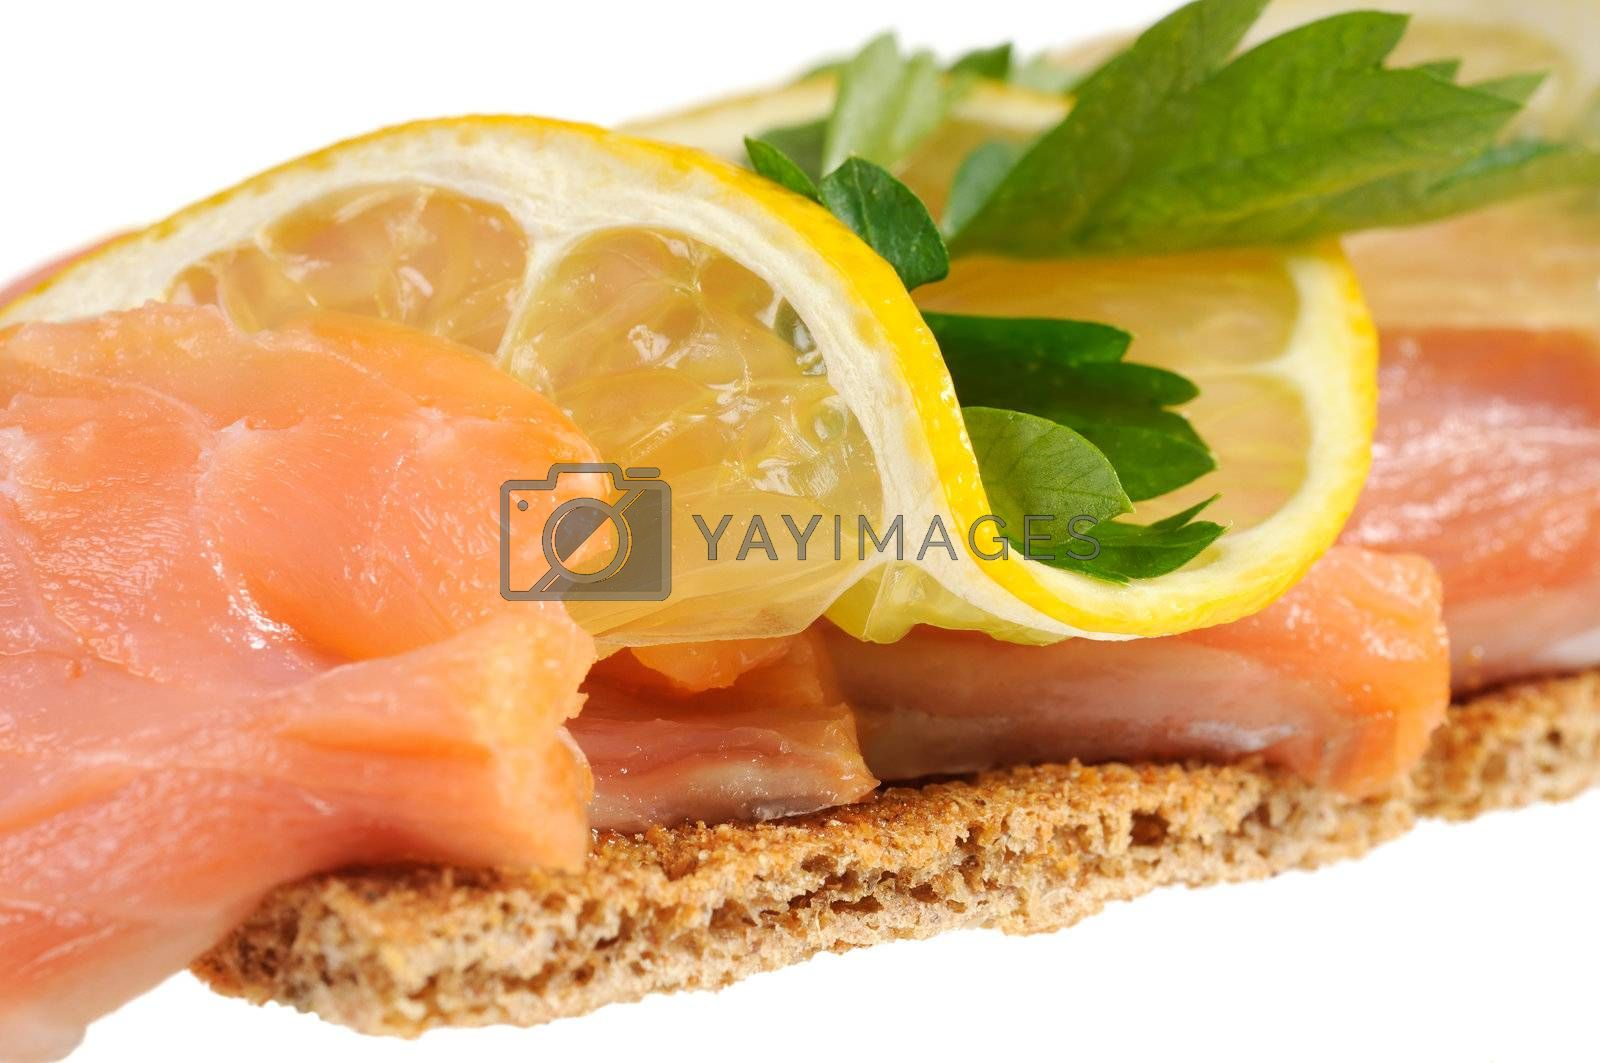 Sandwich snack - salmon with lemon on rye bread. Isolated on white.